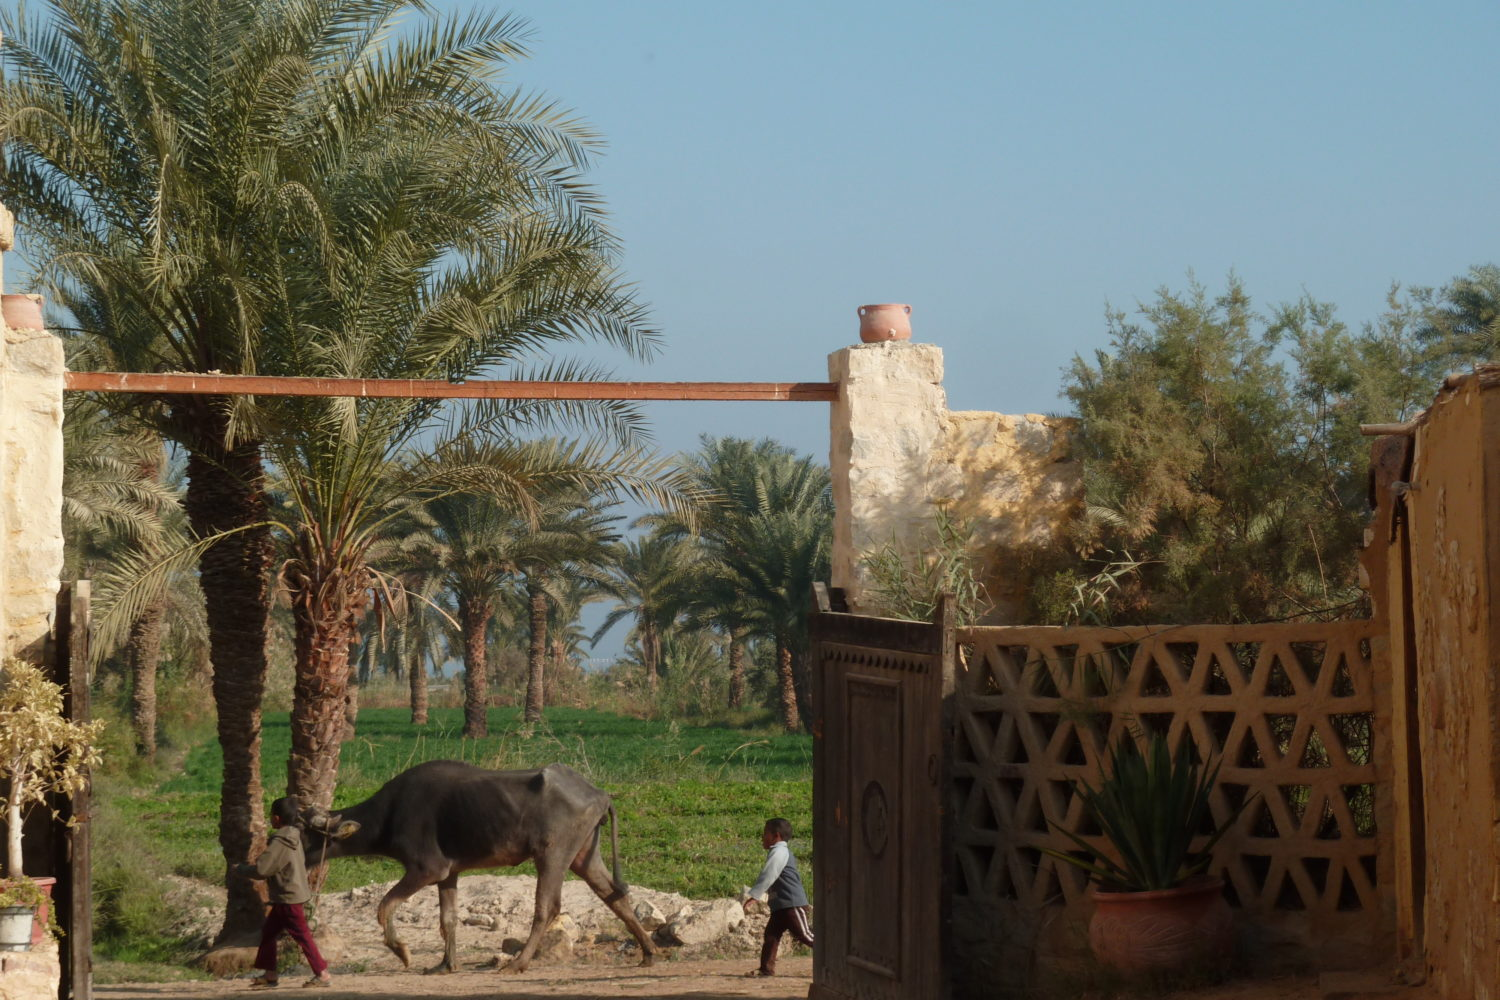 Fayoum Oasis, Deluxe Tours Egypt, Day tour to fayoum